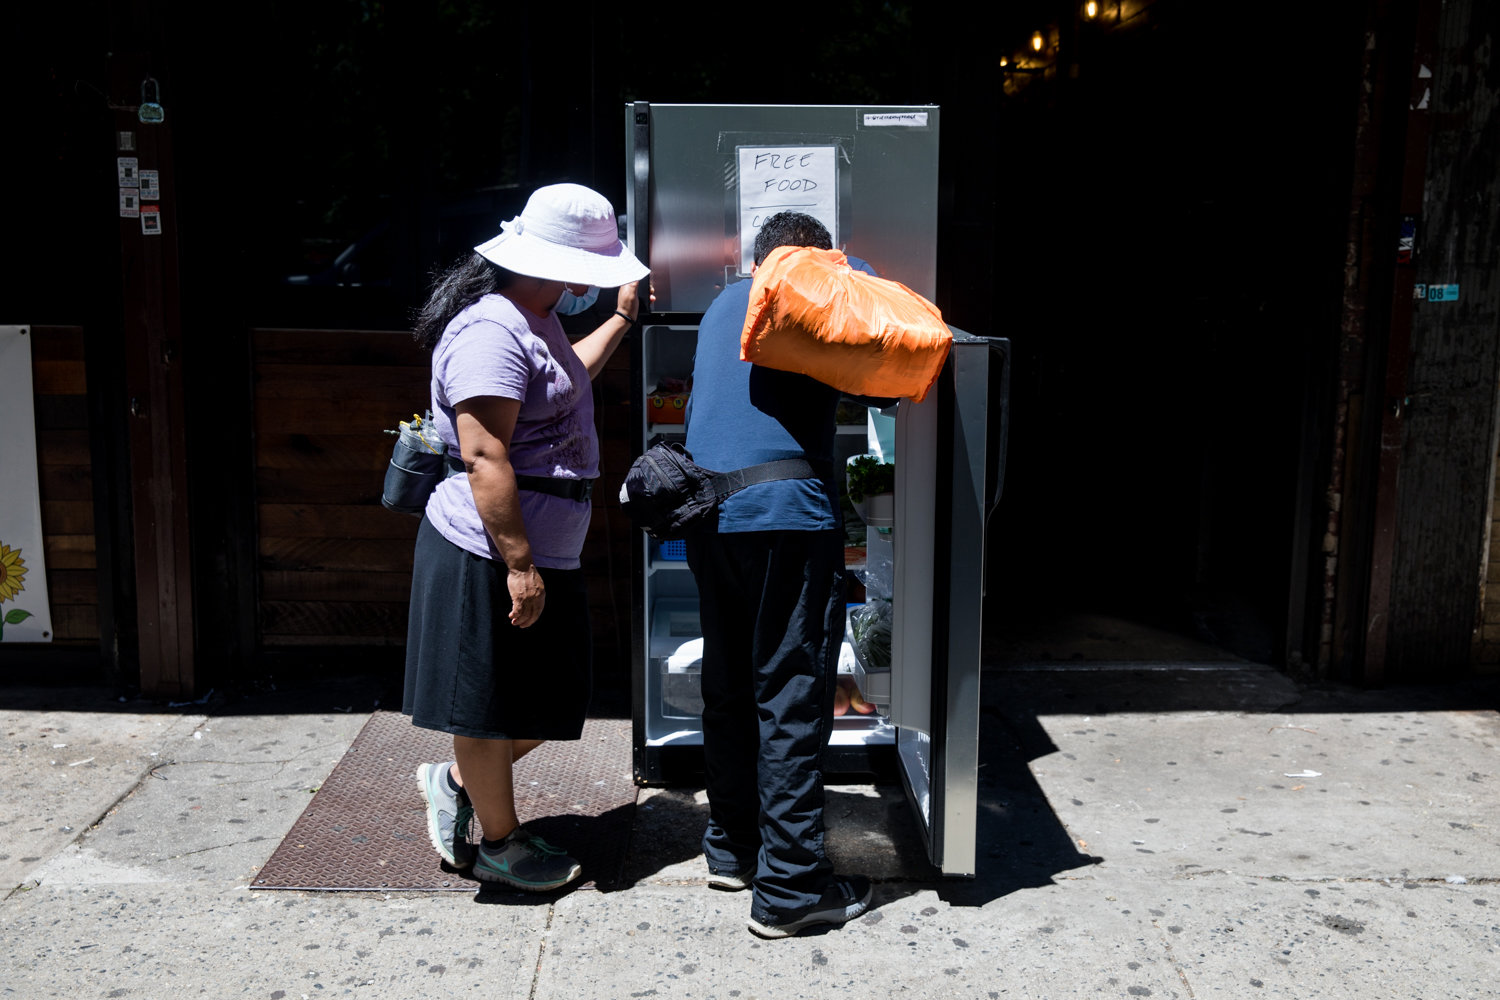 Passersby check a refrigerator outside The Last Stop on Broadway to see what food is available. The fridge there is part of a network across the city stocked by volunteers. Food is available for free to anyone who needs it.